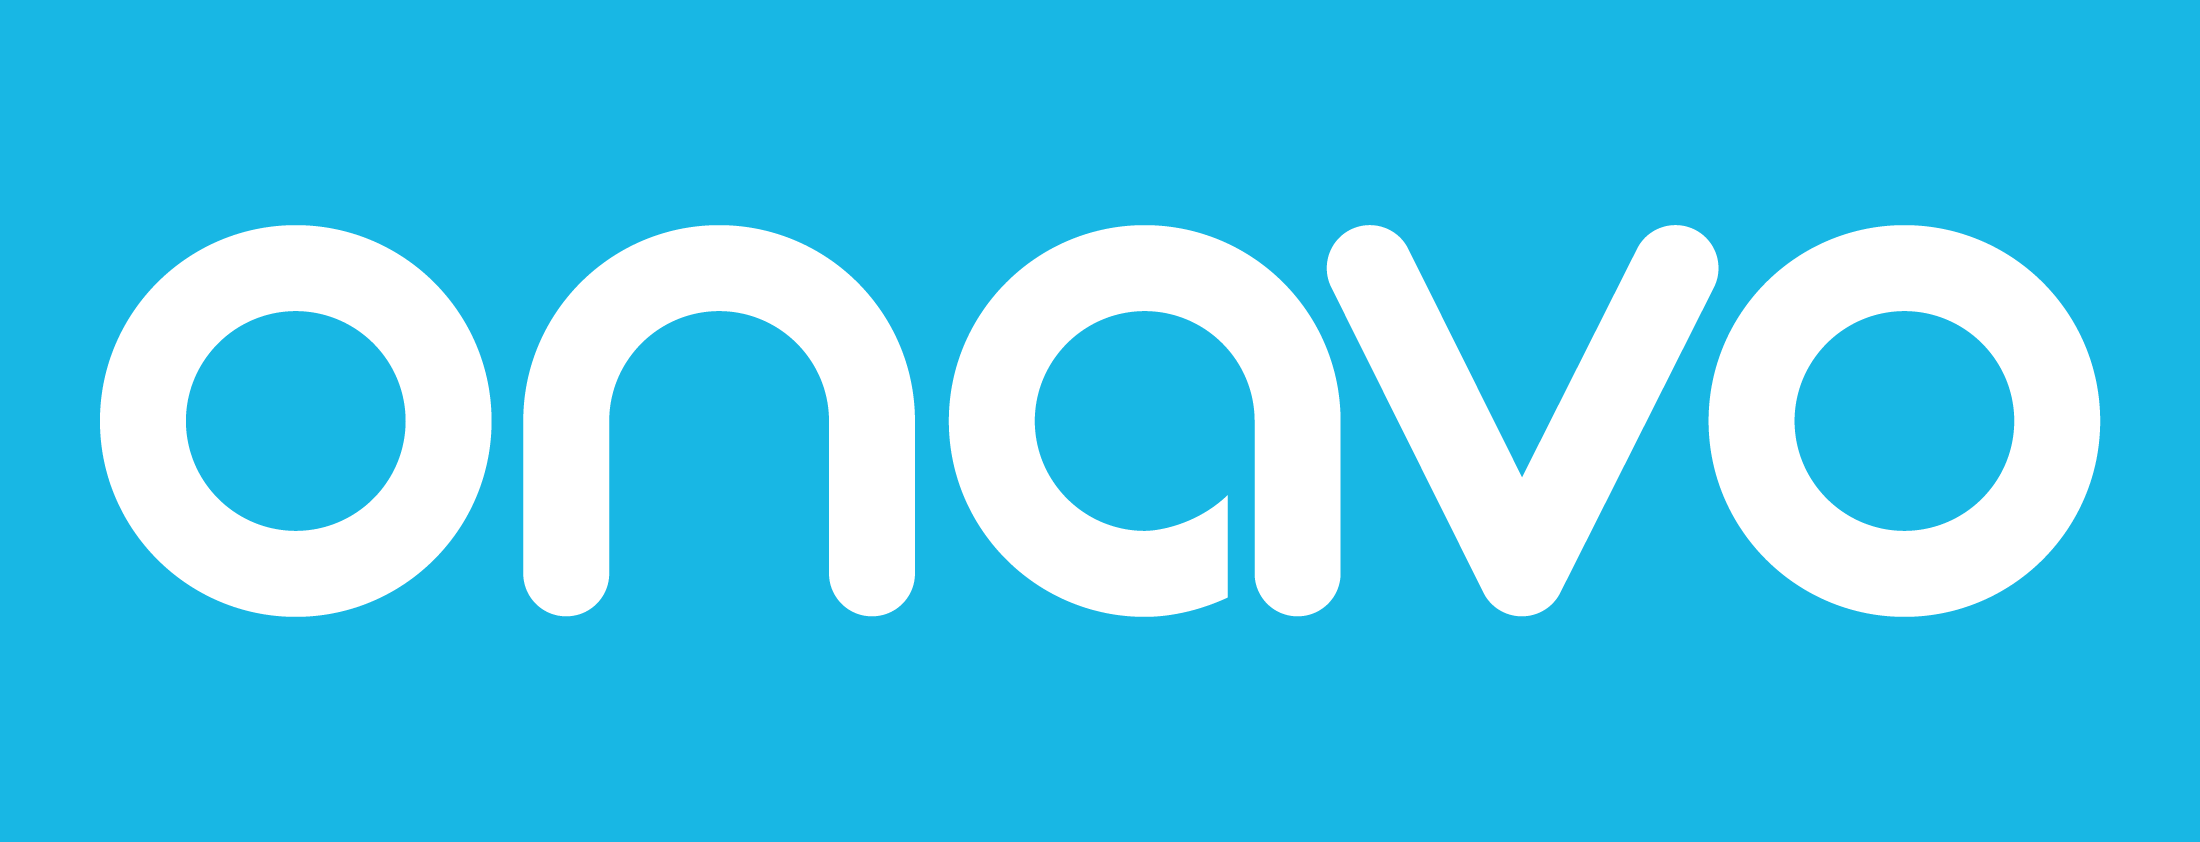 Onavo : l'application ange et démon de Facebook